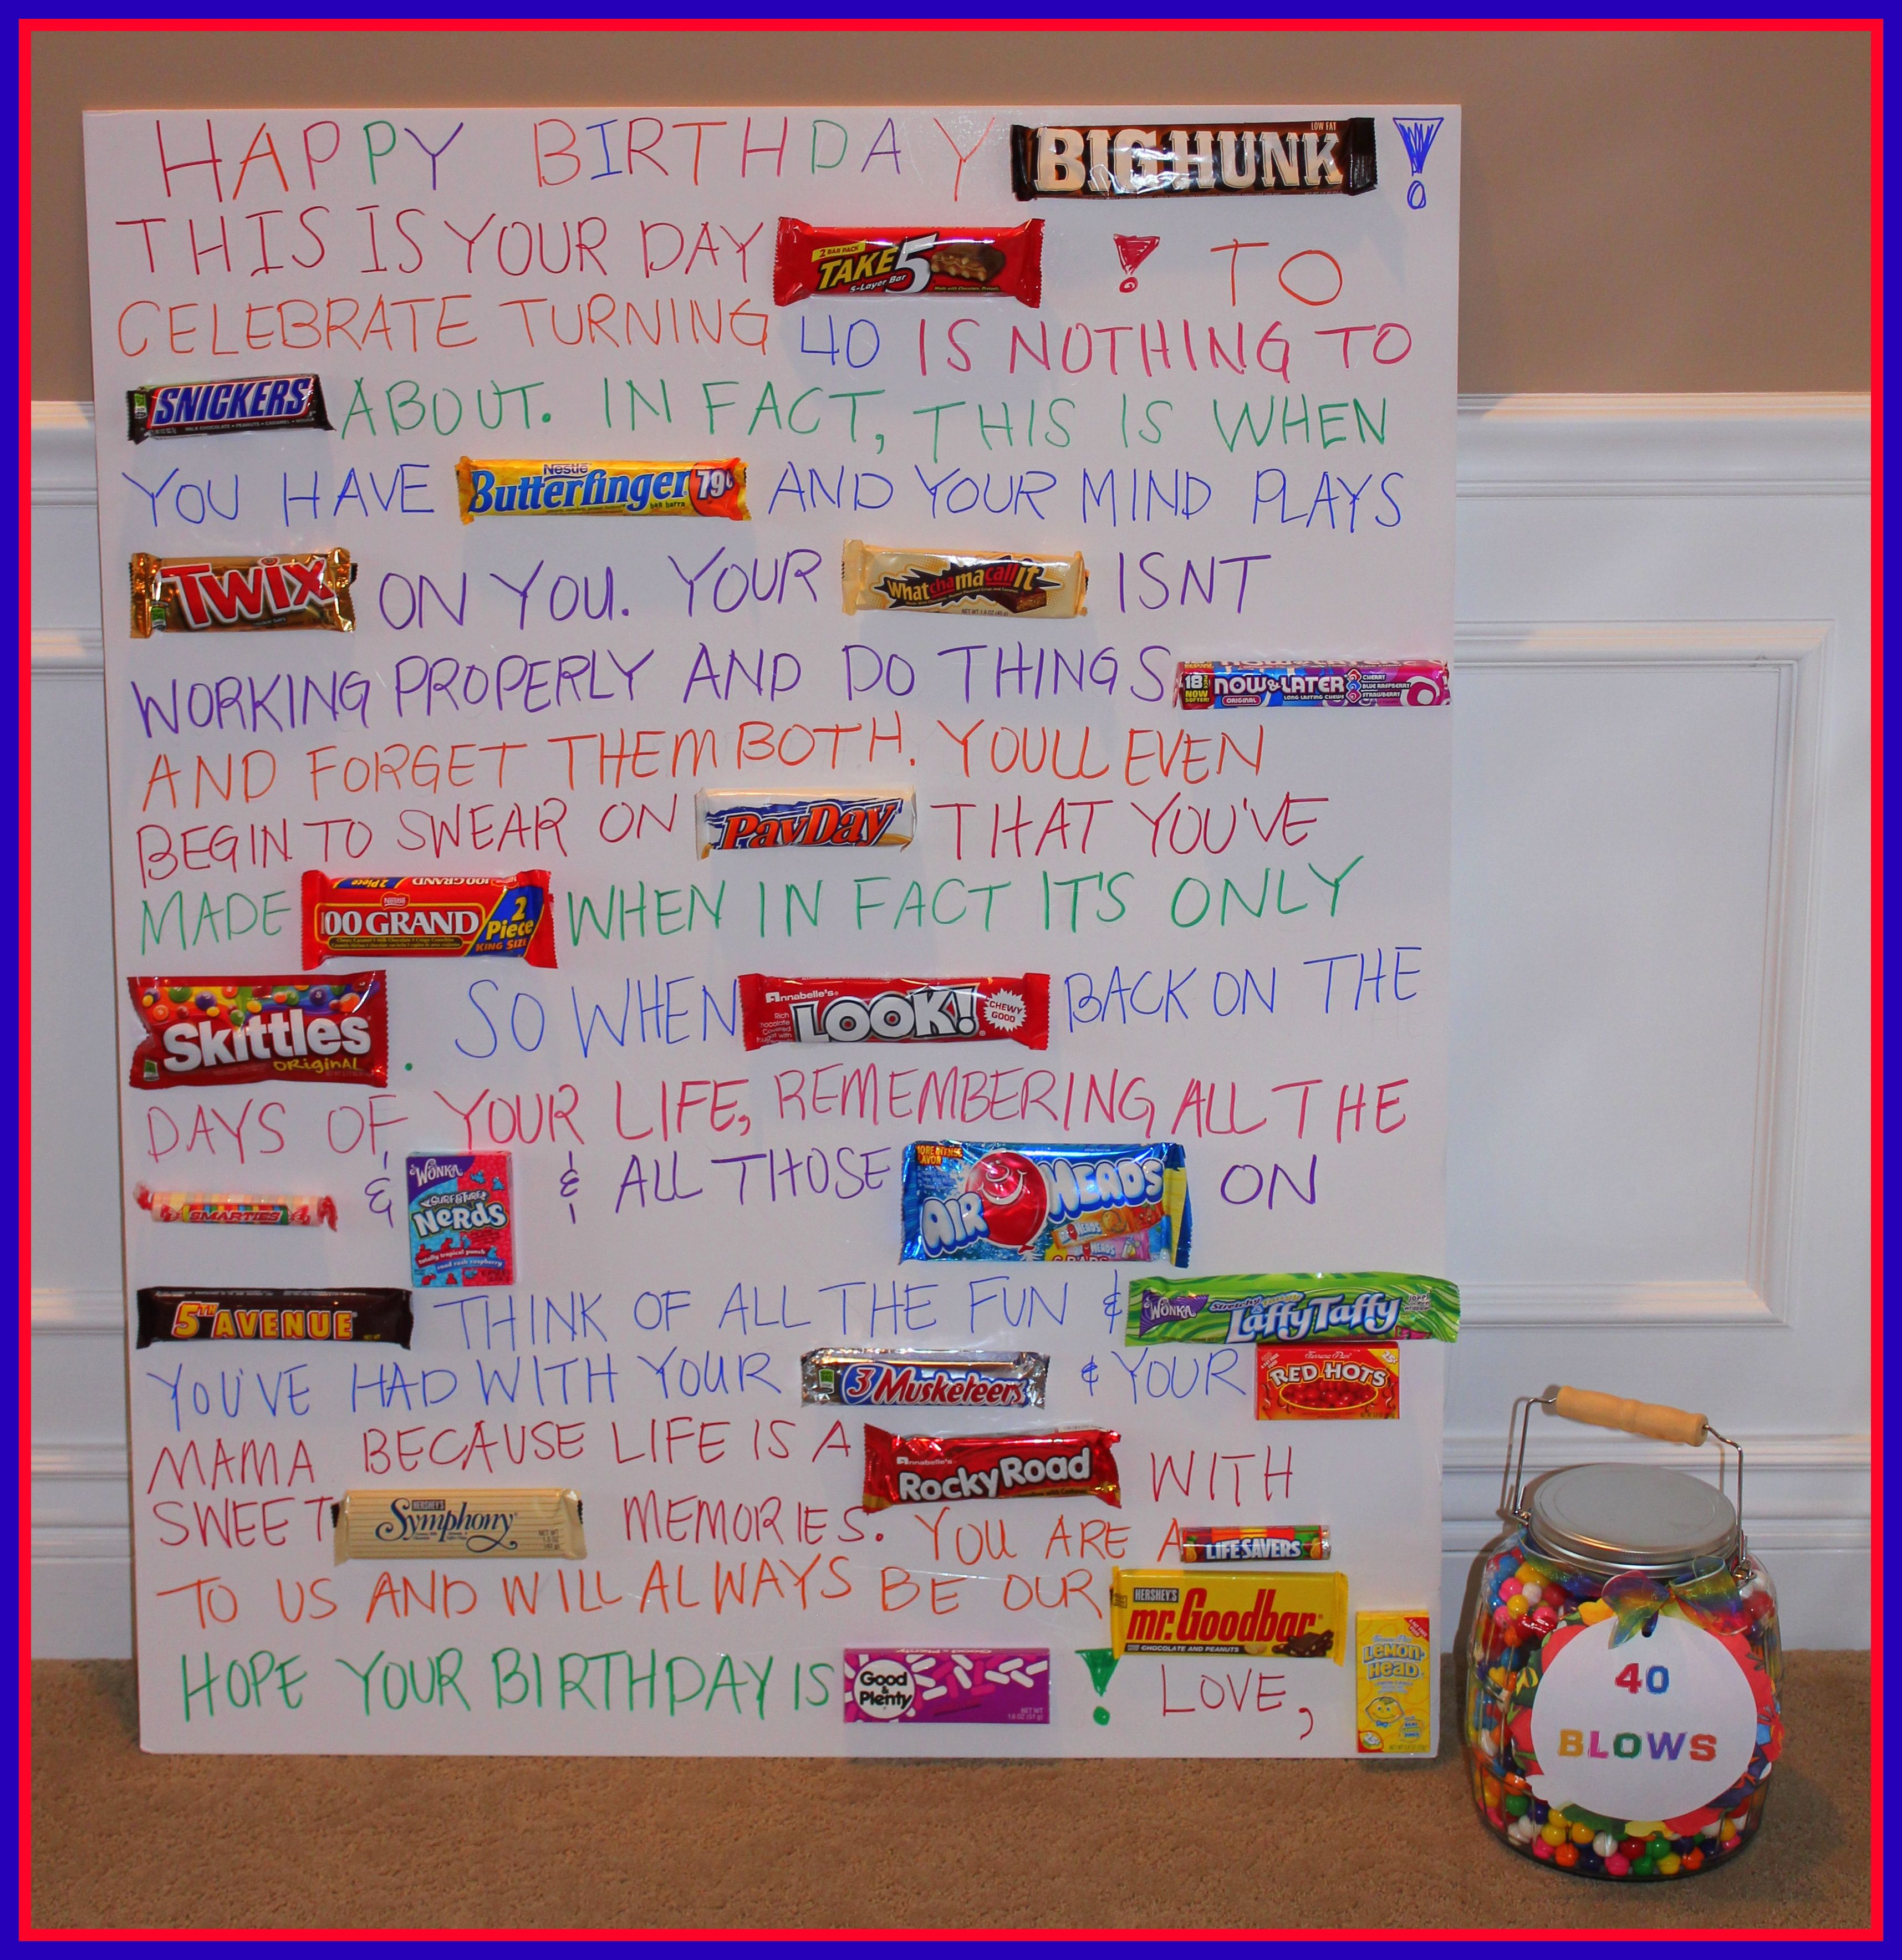 Wedding Shower Gift For 50 Year Old : ... Gift Ideas, 40Th Birthday, Candy Bar Poems, Birthday Gifts, 30Th